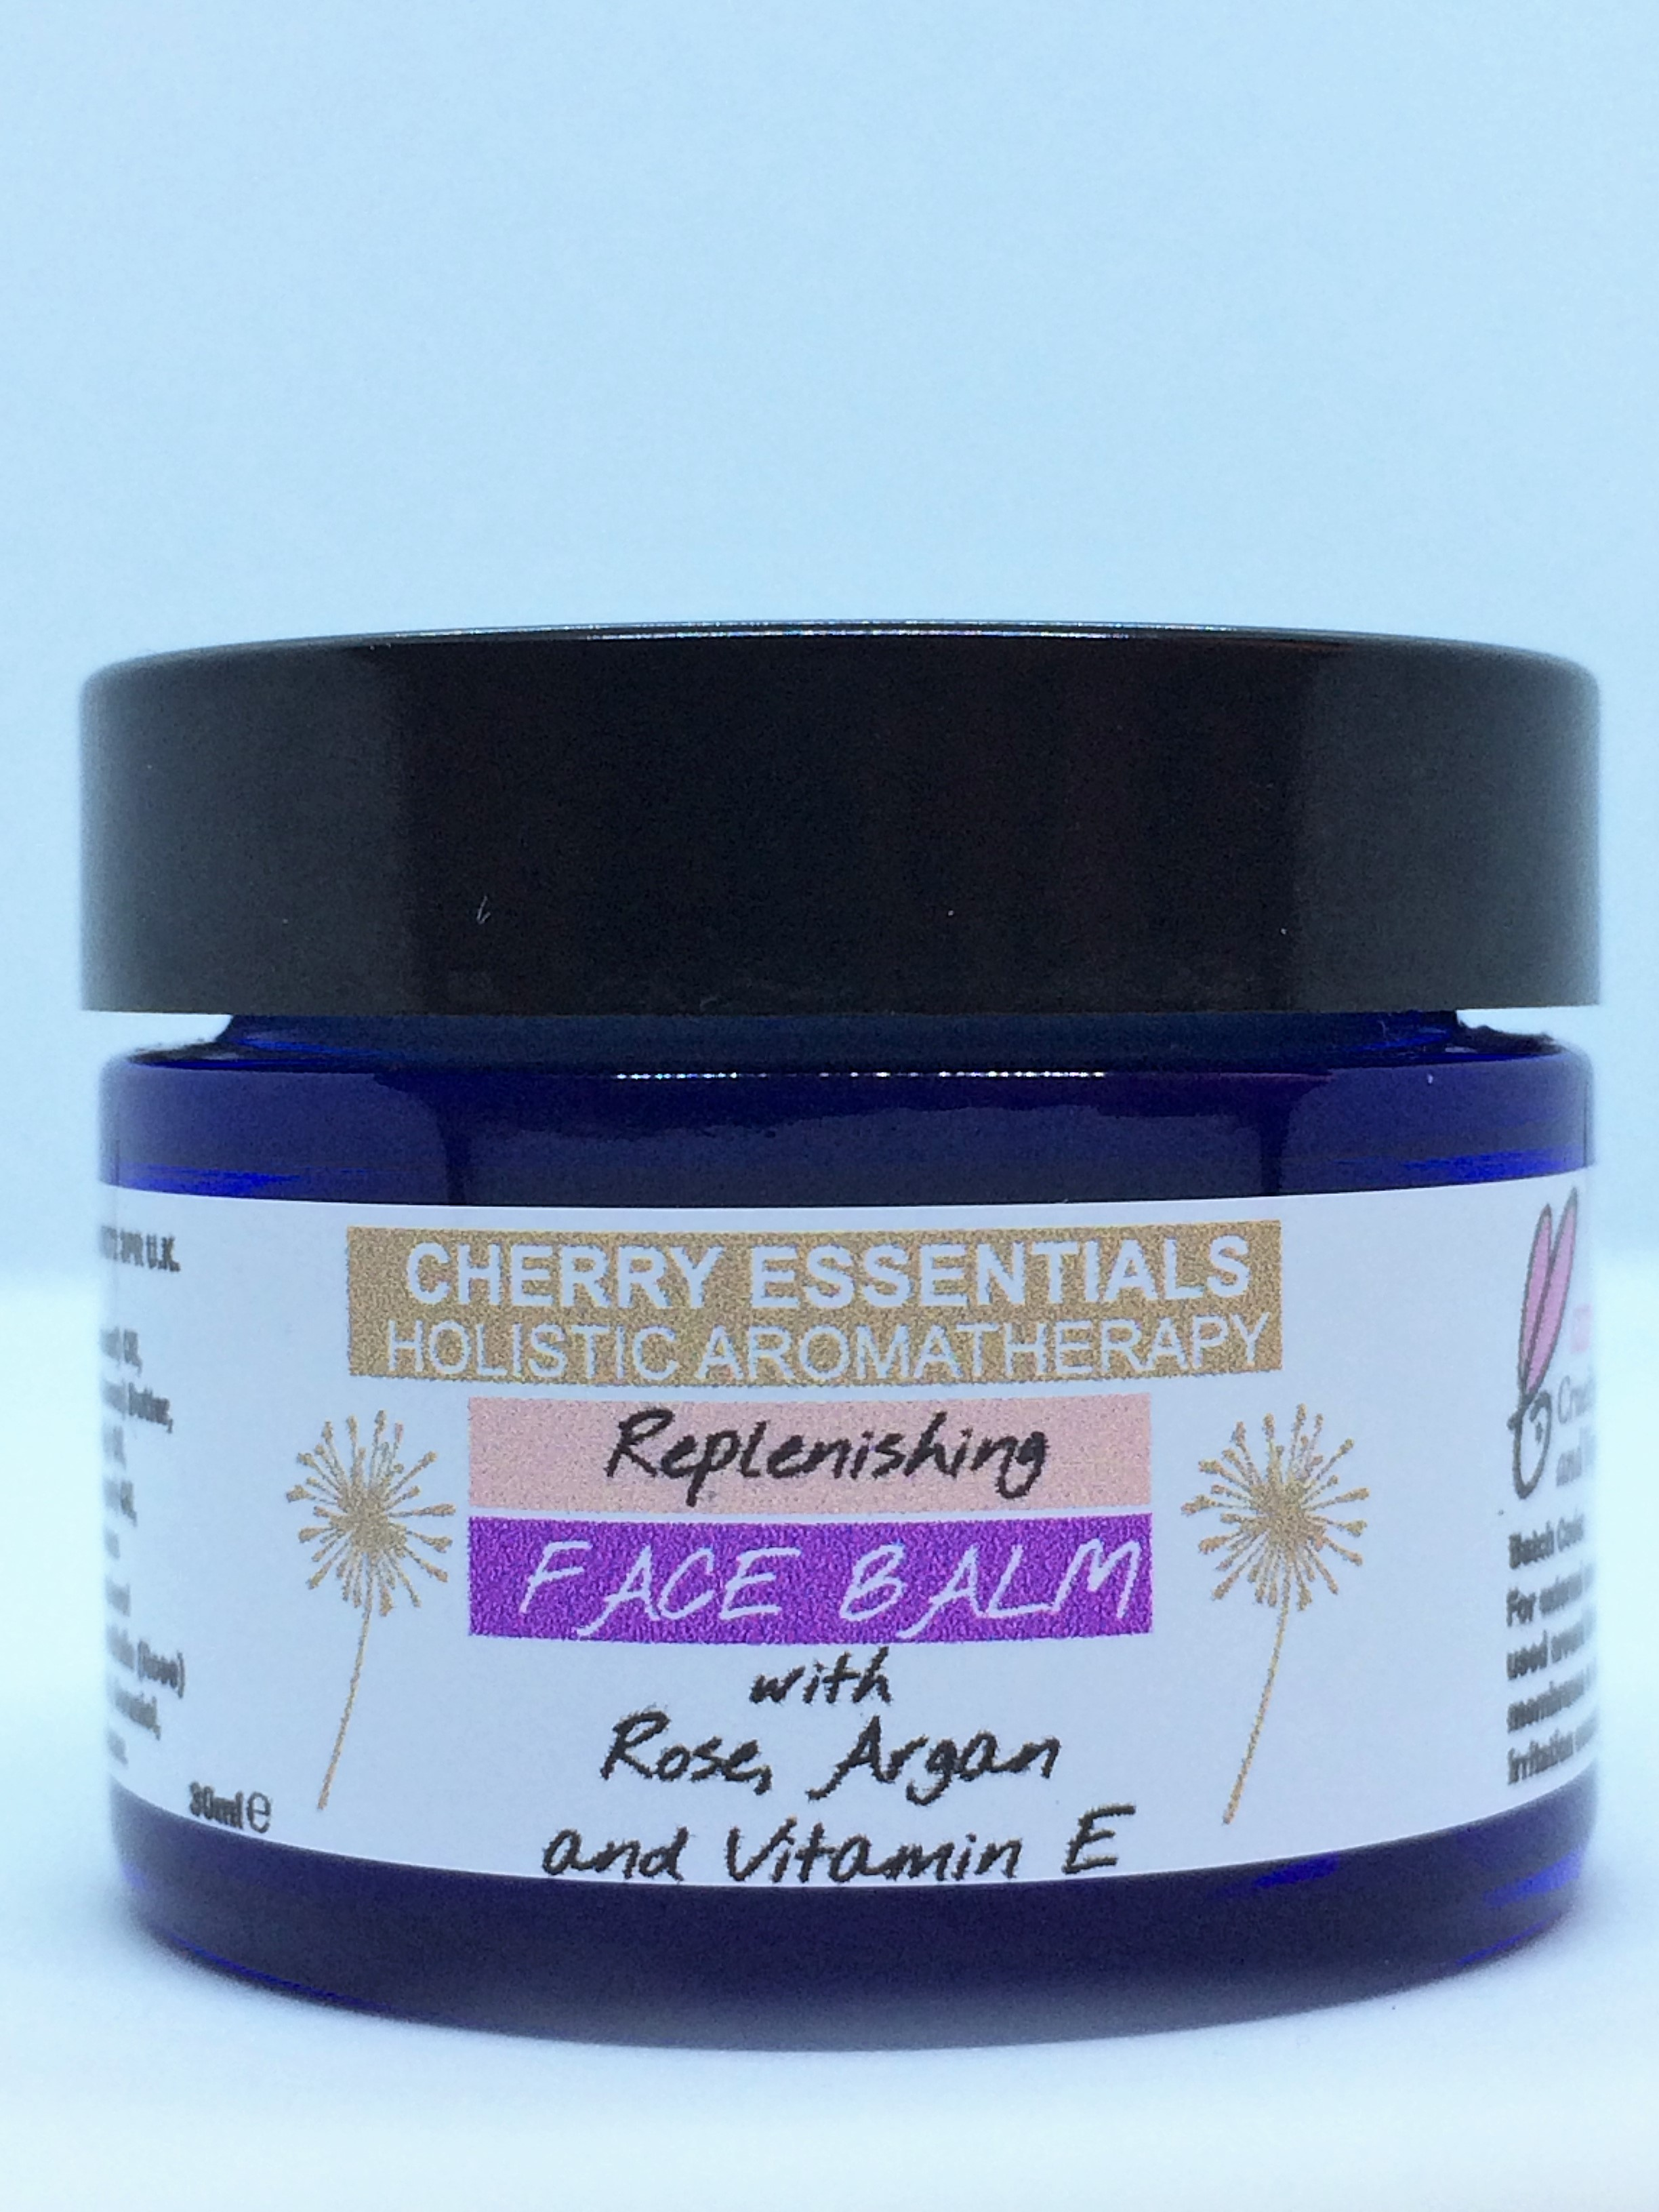 Replenishing Face Balm with Rose, Argan and Vitamin E.